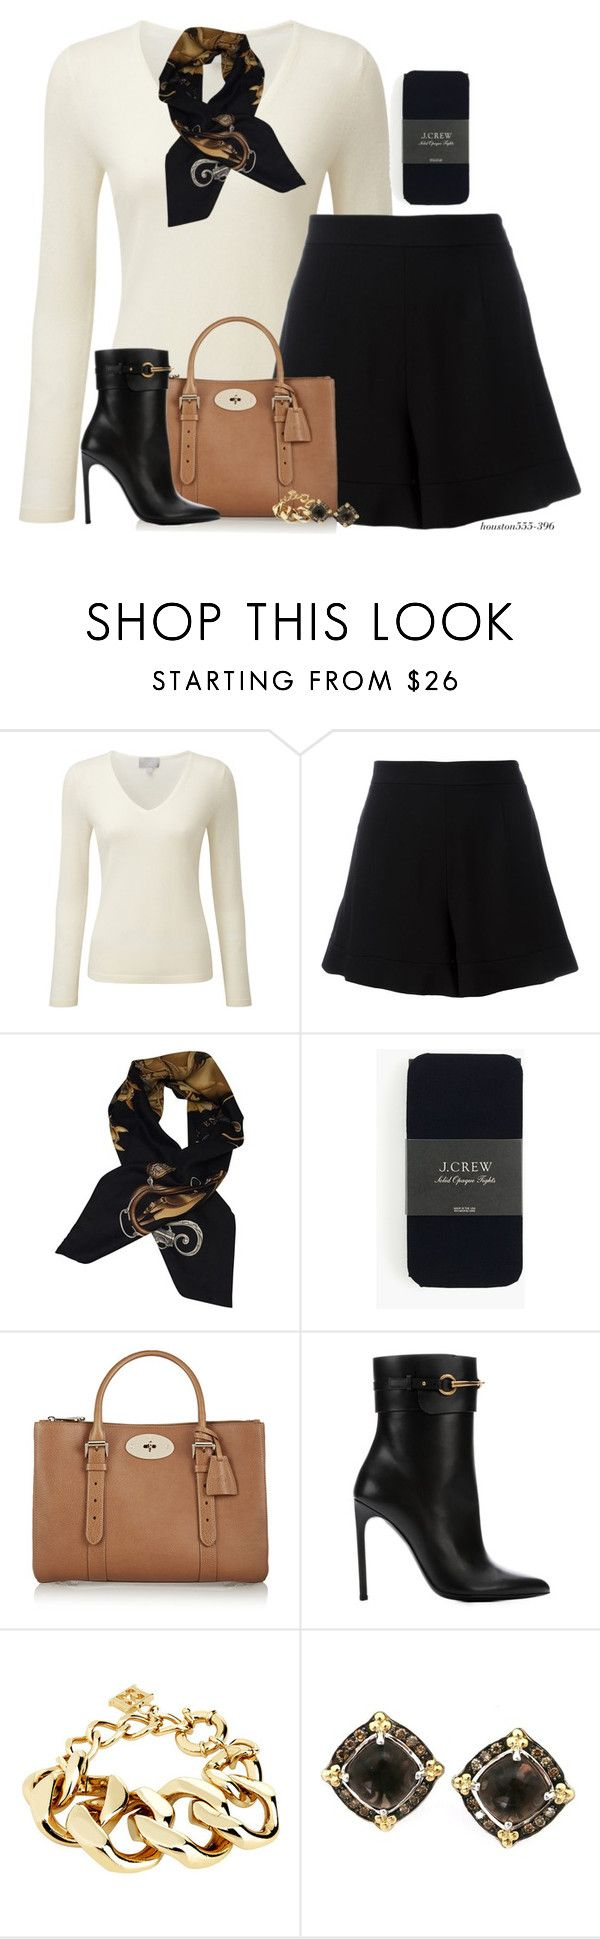 """""""Shorts for Winter"""" by houston555-396 ❤ liked on Polyvore featuring Pure Collection, RED Valentino, Hermès, J.Crew, Mulberry, Gucci and ESCADA"""